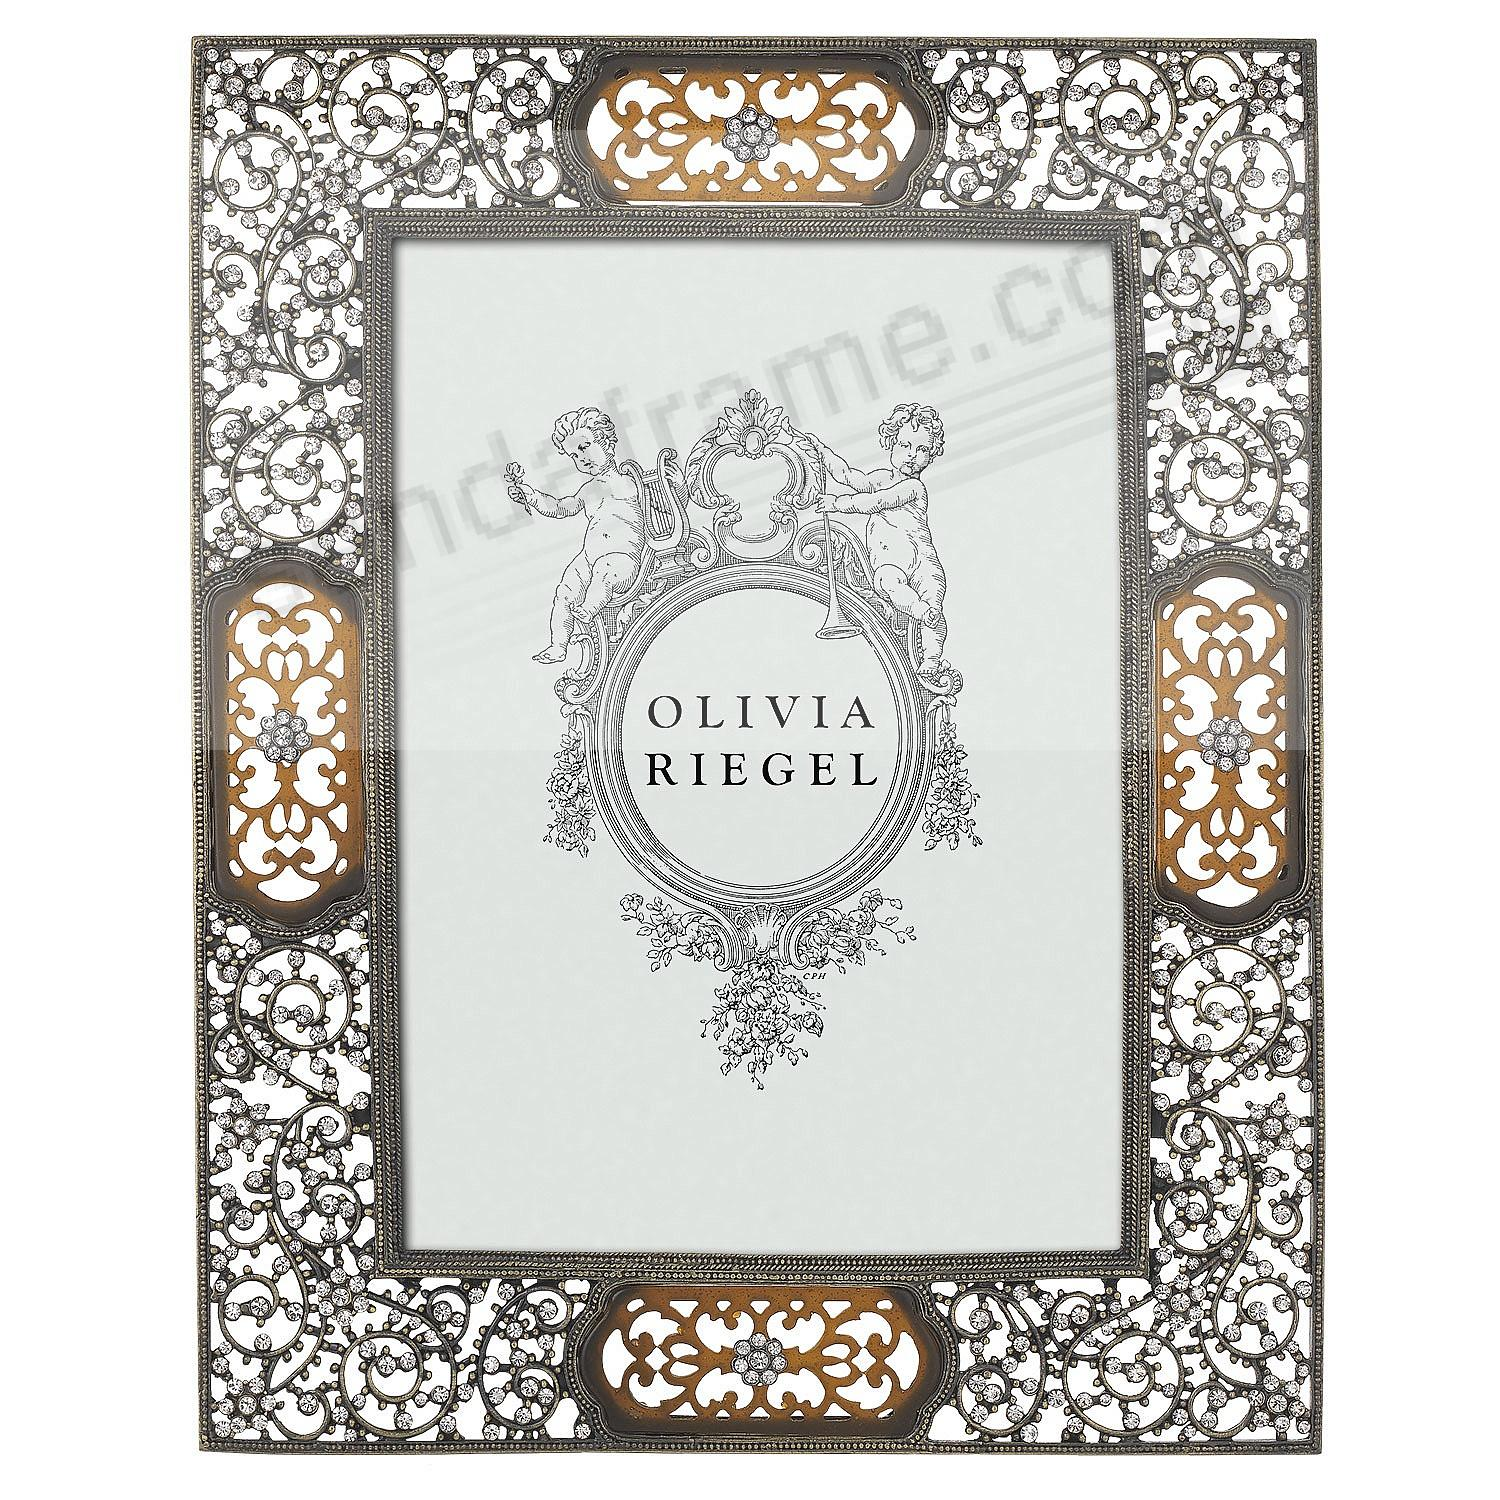 QUEEN ANNE'S LACE Austrian Crystal BRONZE 5x7 frame by Olivia Riegel®